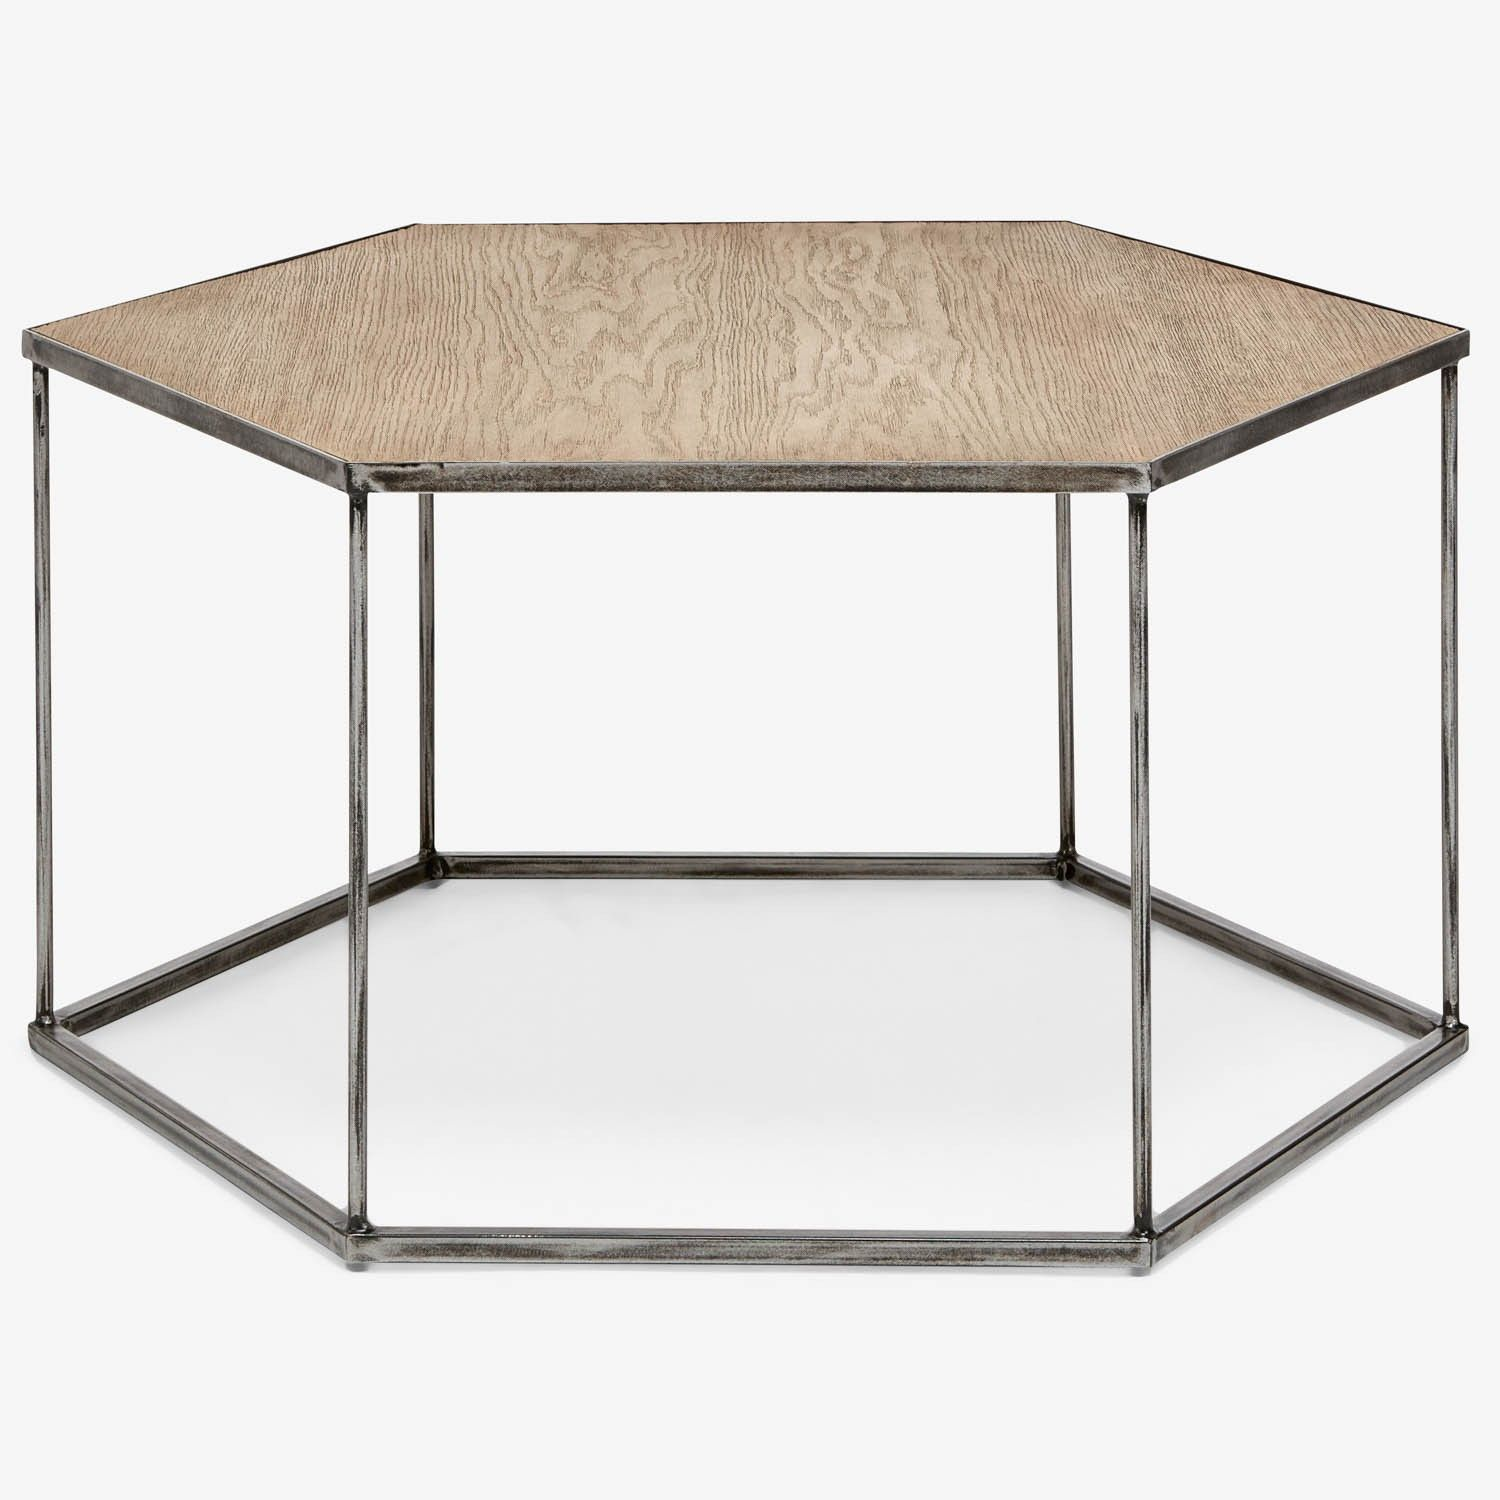 This geometric coffee table blends industrial elements with warm